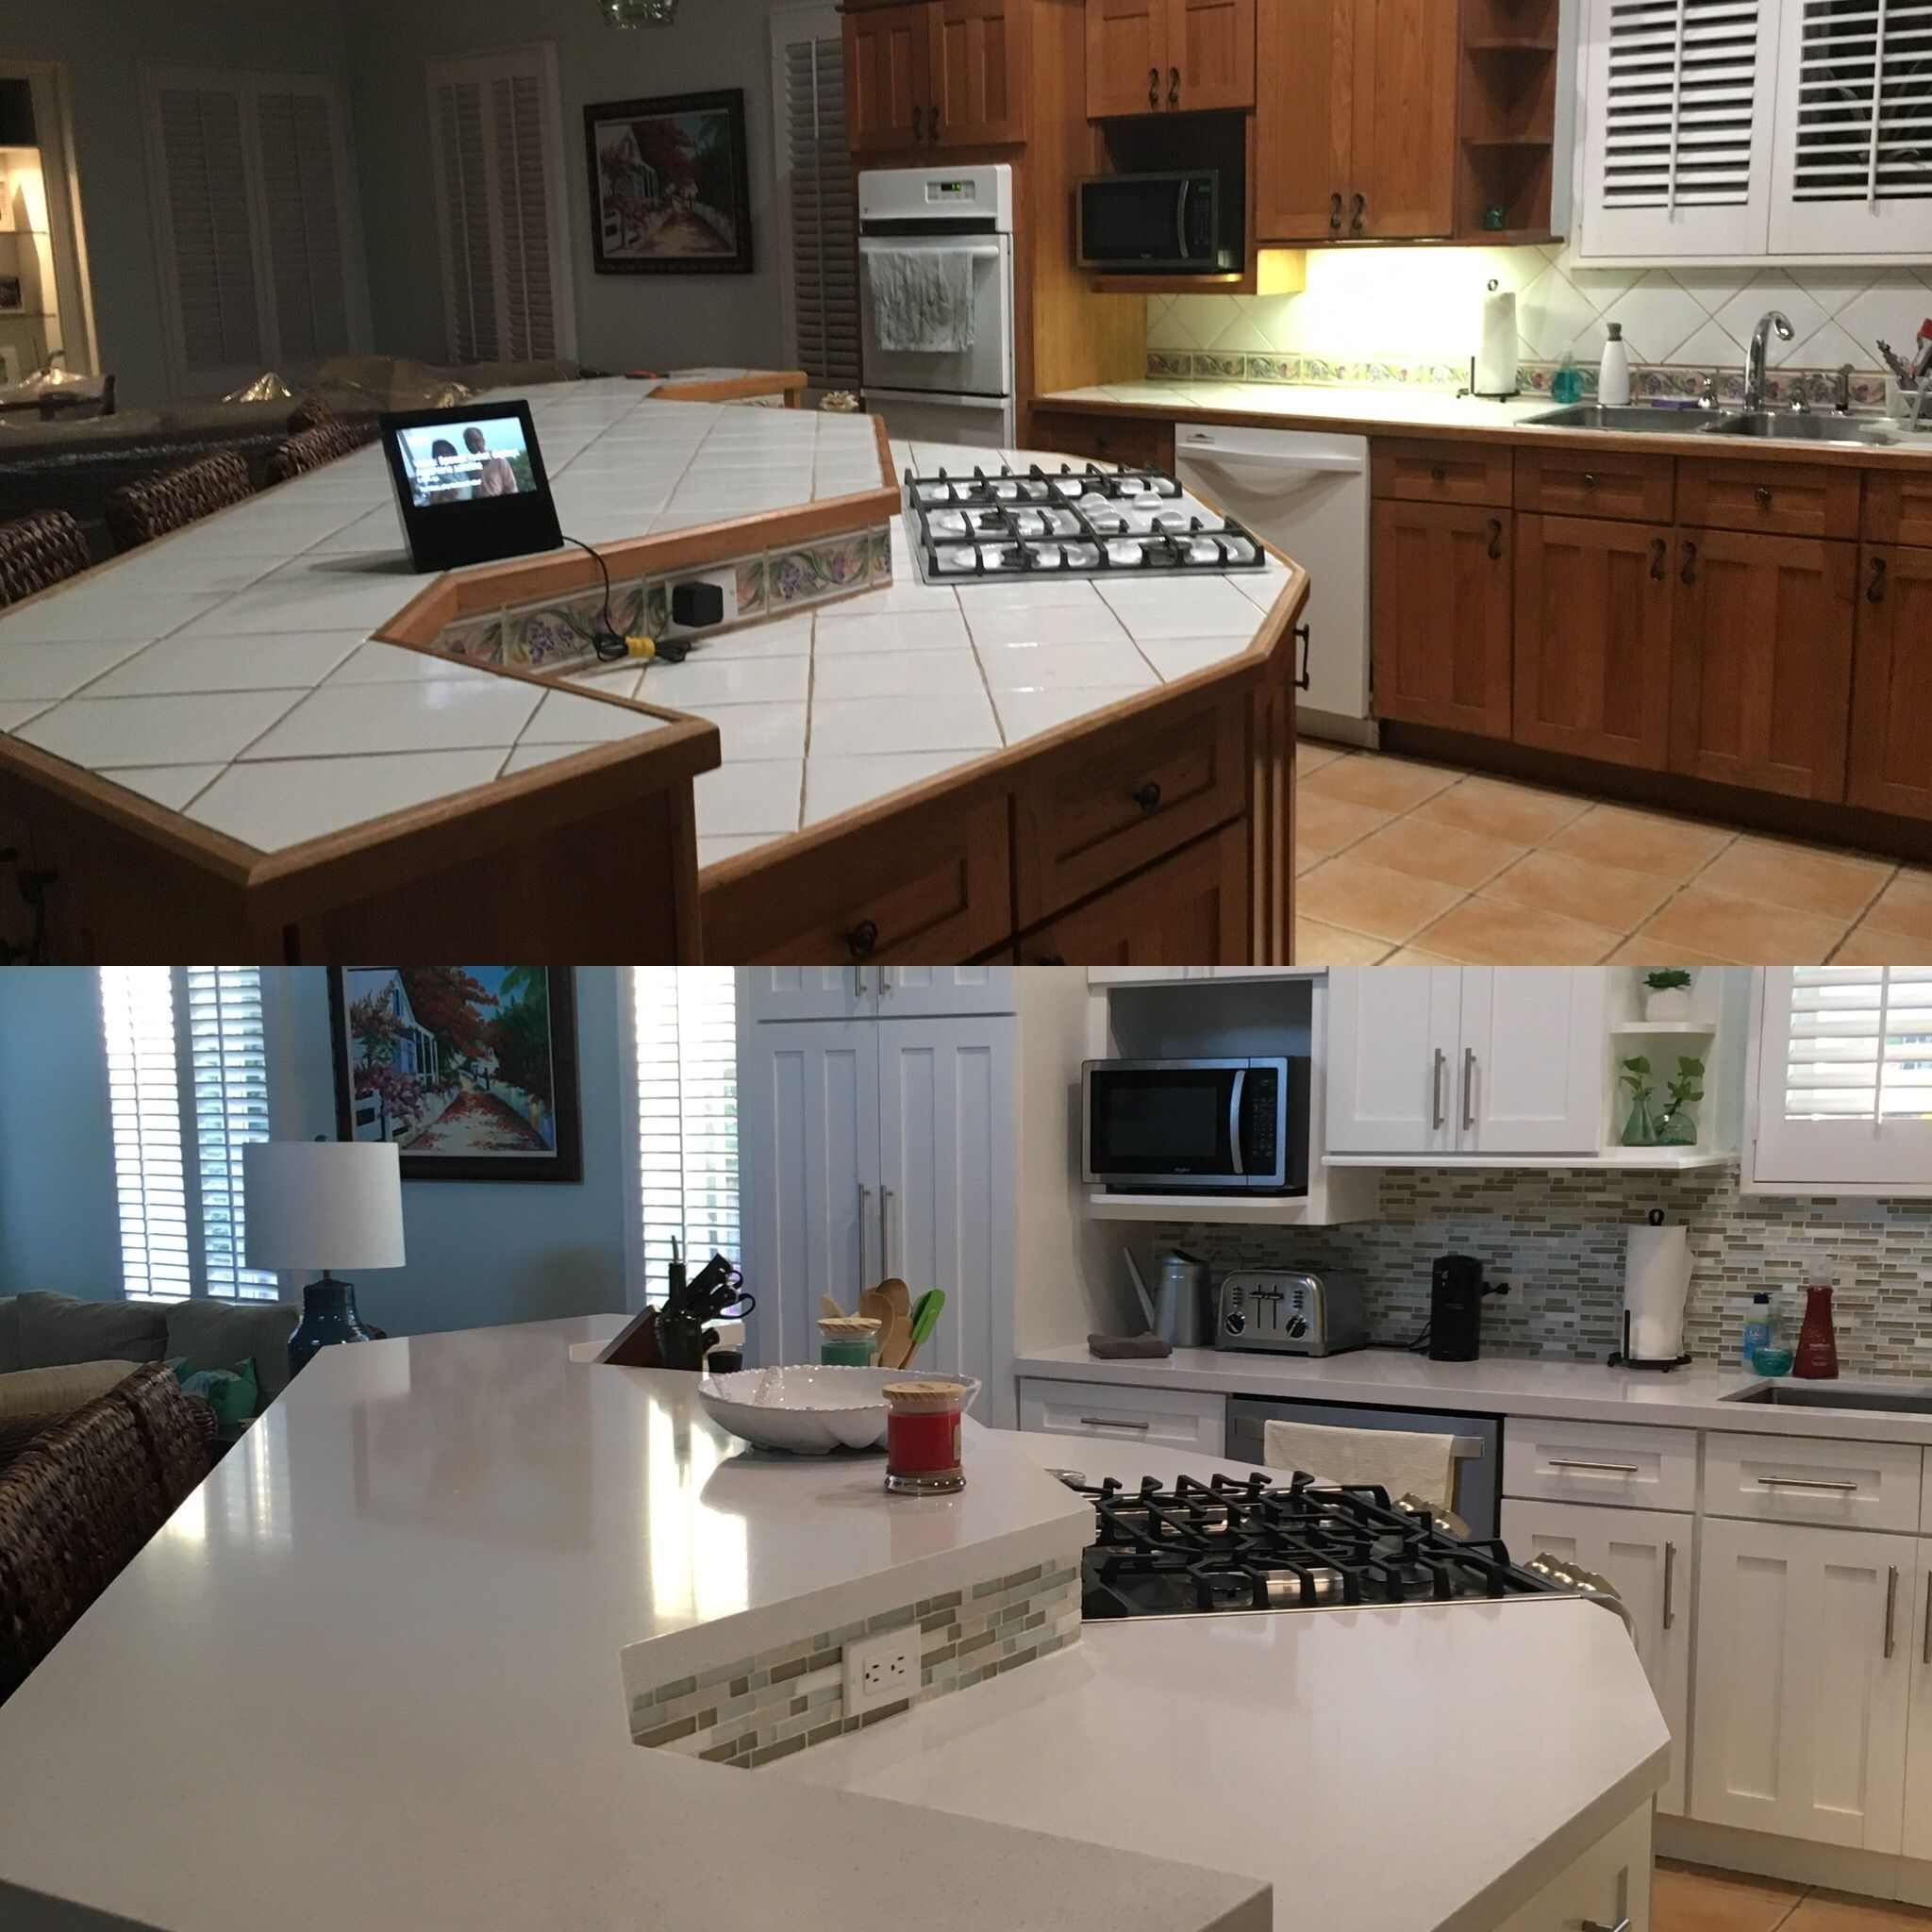 Pin by rhonda cartwright on kitchen and living area remodel in